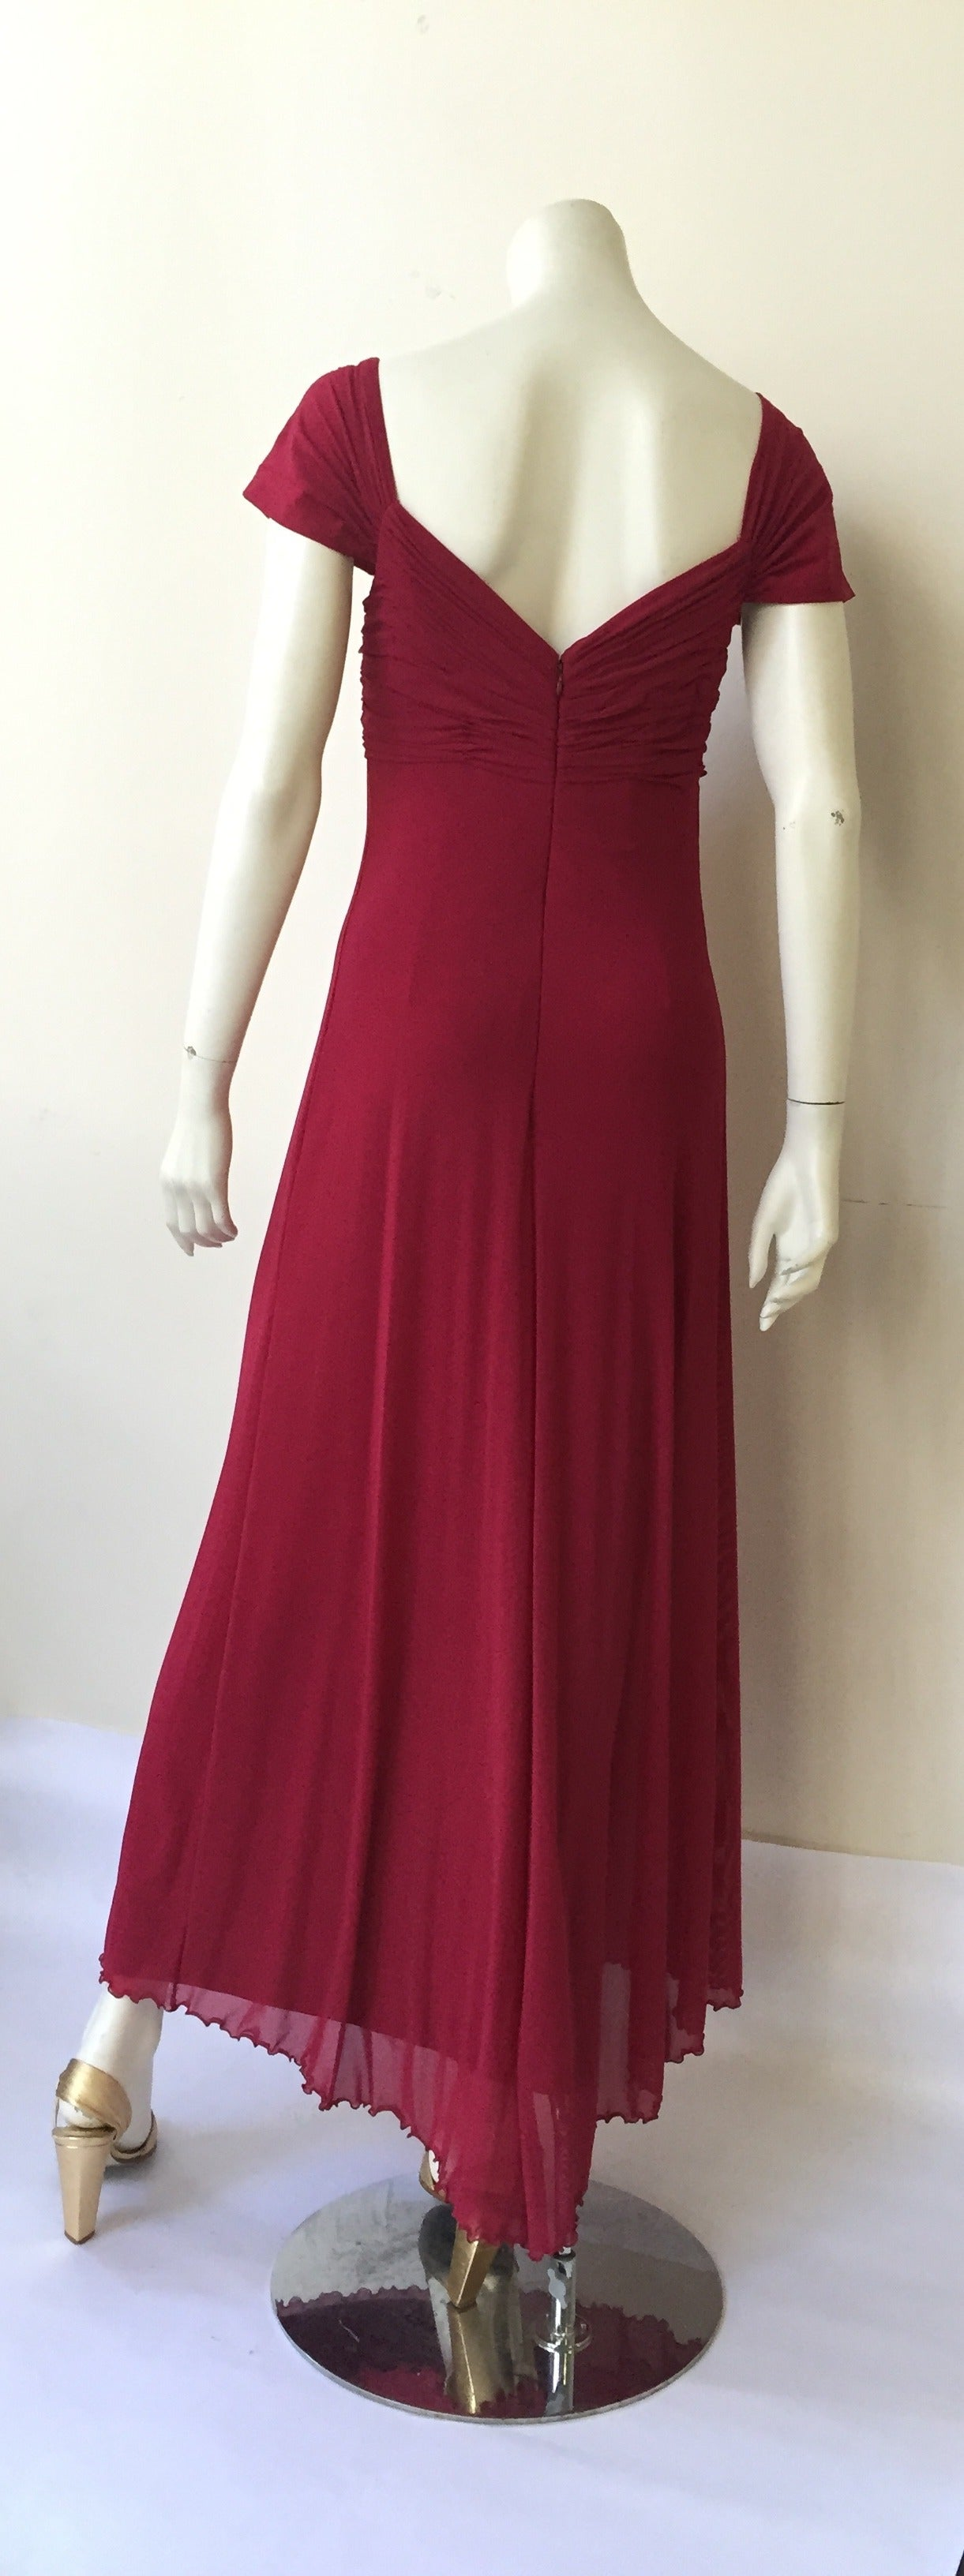 Vicky Tiel Couture Paris 80s Silk Gown Size 8. 6